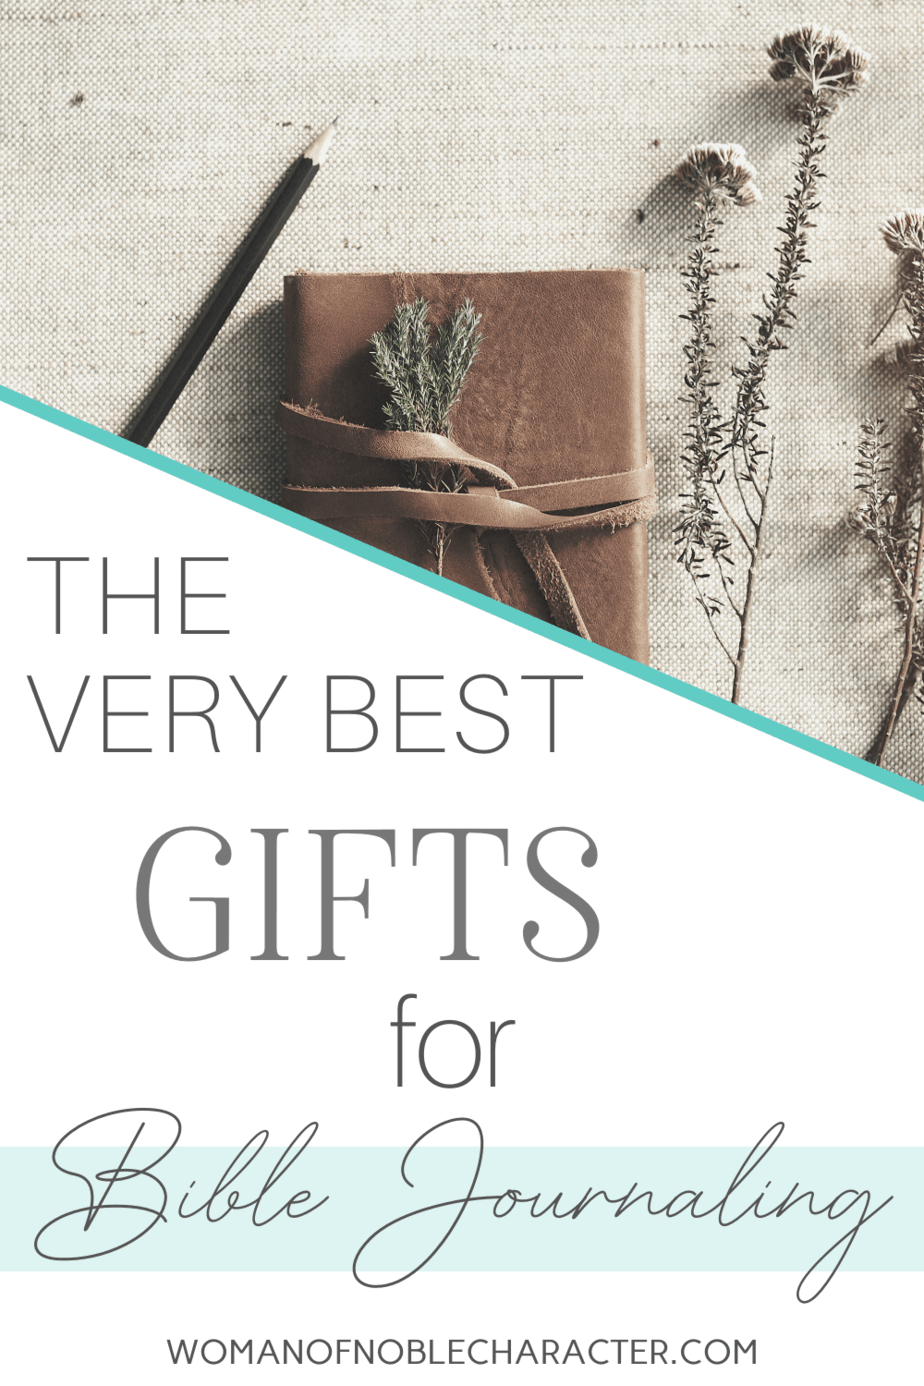 Great gifts for one who is beginning a Bible Journal